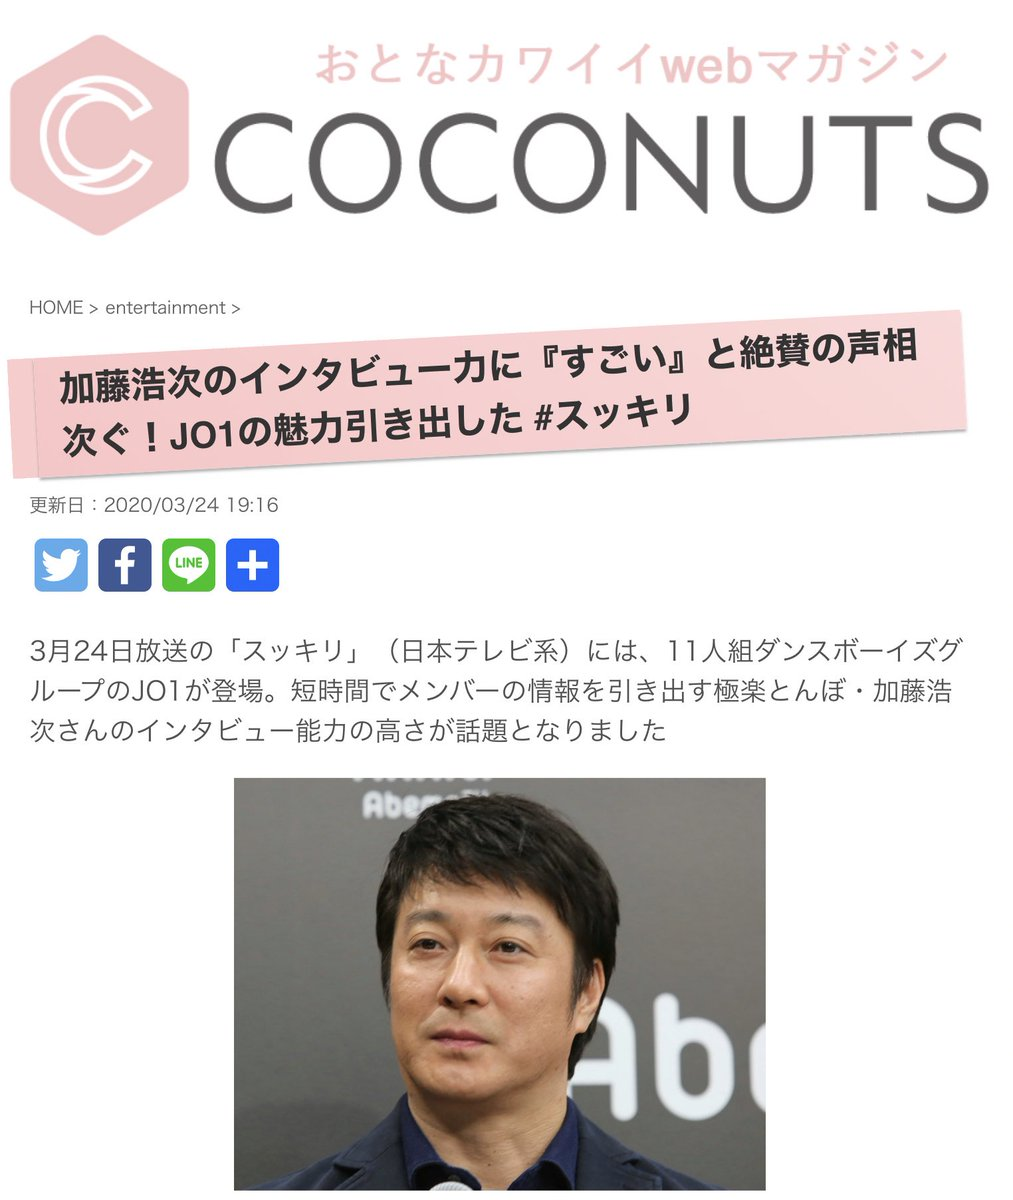 <COCONuts Online Magazine Translation> 3/24  ■  #スッキリ MC Kouji Kato's interview ability, which draws out the appeal of #JO1  #川西拓実 #金城碧海 #佐藤景瑚 #豆原一成 #與那城奨  https://coconutsjapan.com/entertainment/jo1-katoukoji-sukkiri/29348/ … *Article praises MC Kato but also covers information about JO1 at Sukkiri.pic.twitter.com/mZCJjQHoSh